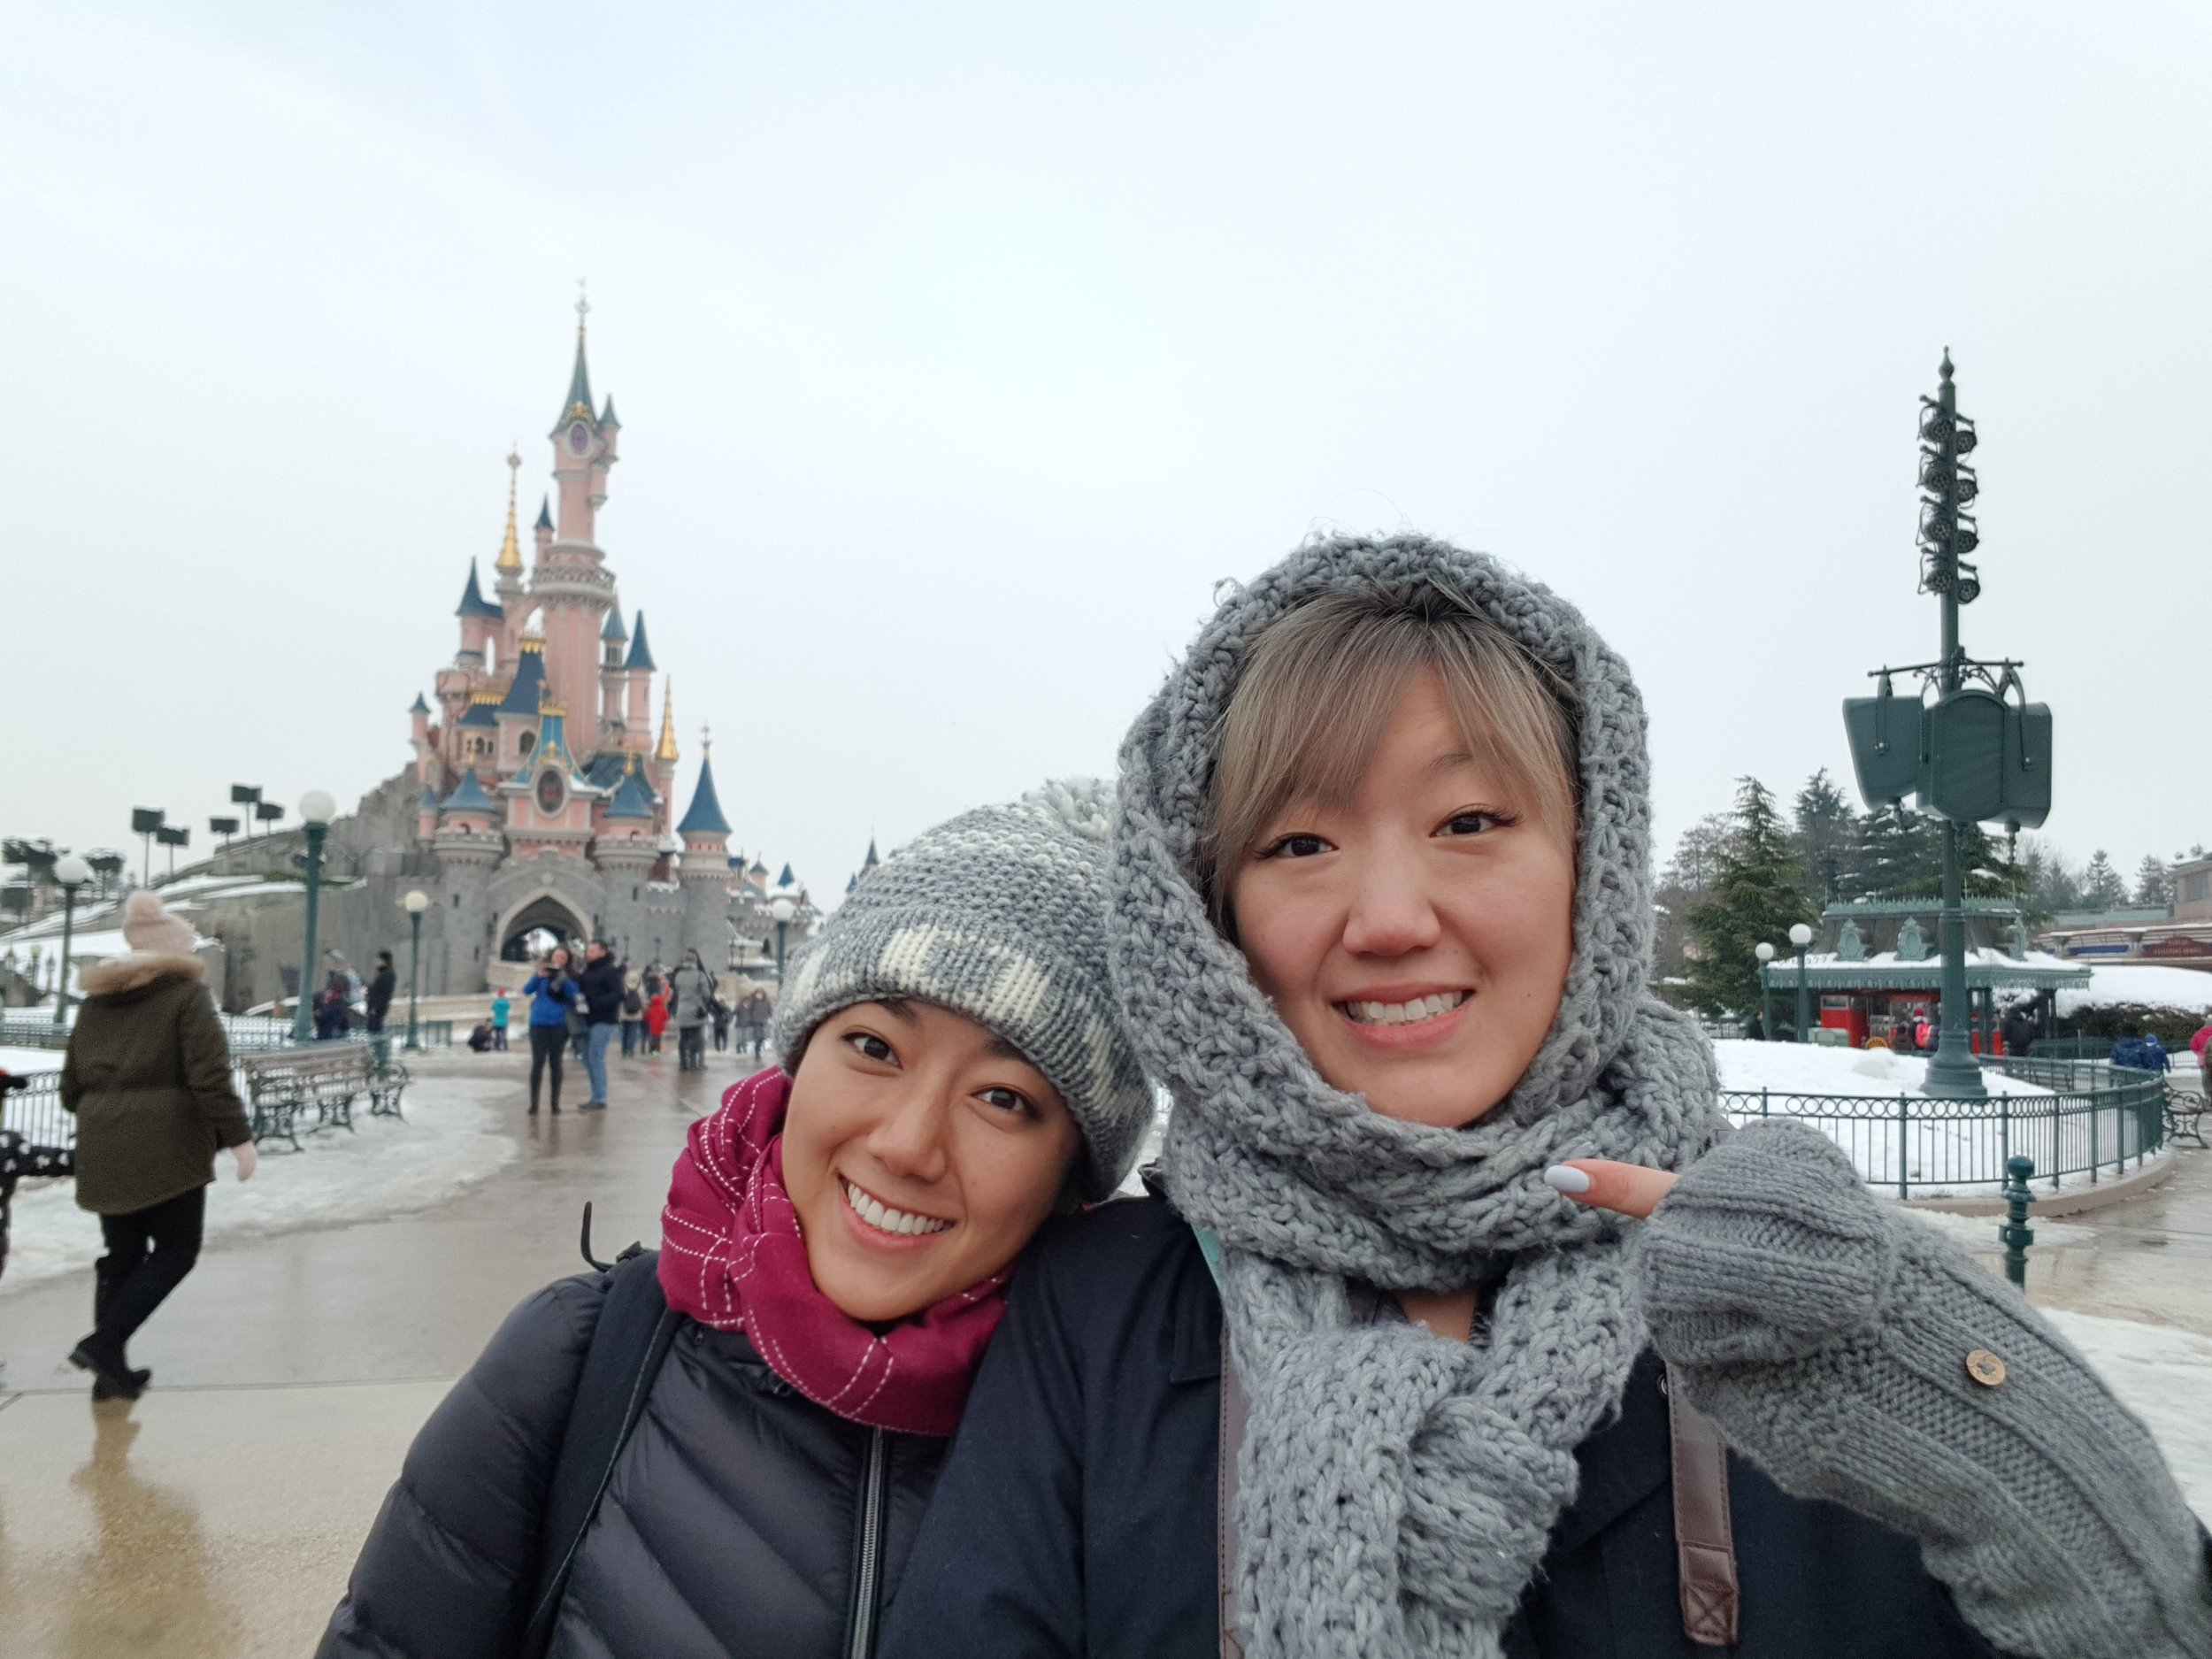 Traveling with the sister, Jane, and hitting up Euro Disney the first day. Thanks to the (apparently rare) snow fall, all outdoor rides were closed. We managed to wander through both parks (Disneyland & Walt Disney Studios) before 3pm.